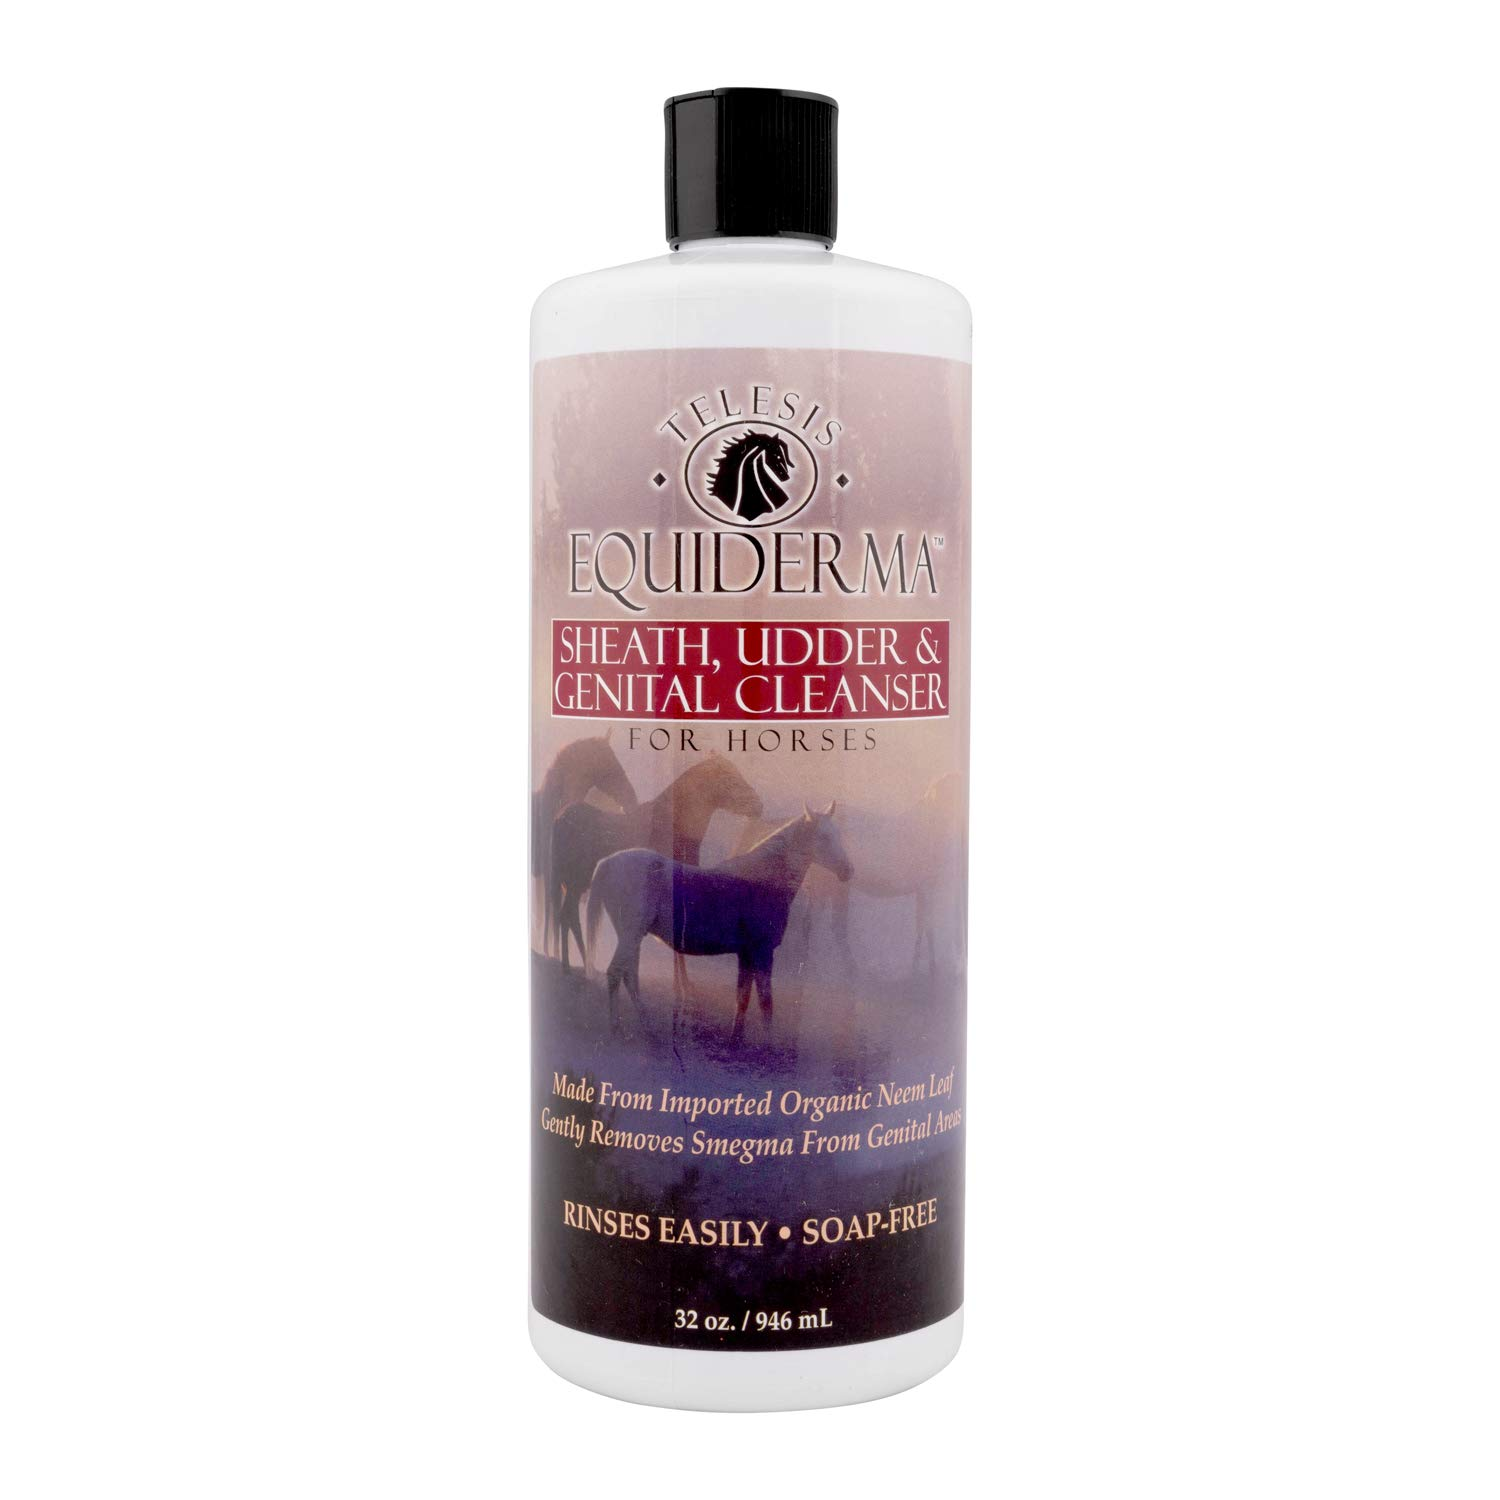 Equiderma Sheath, Udder & Genital Cleanser for Horses by Equiderma